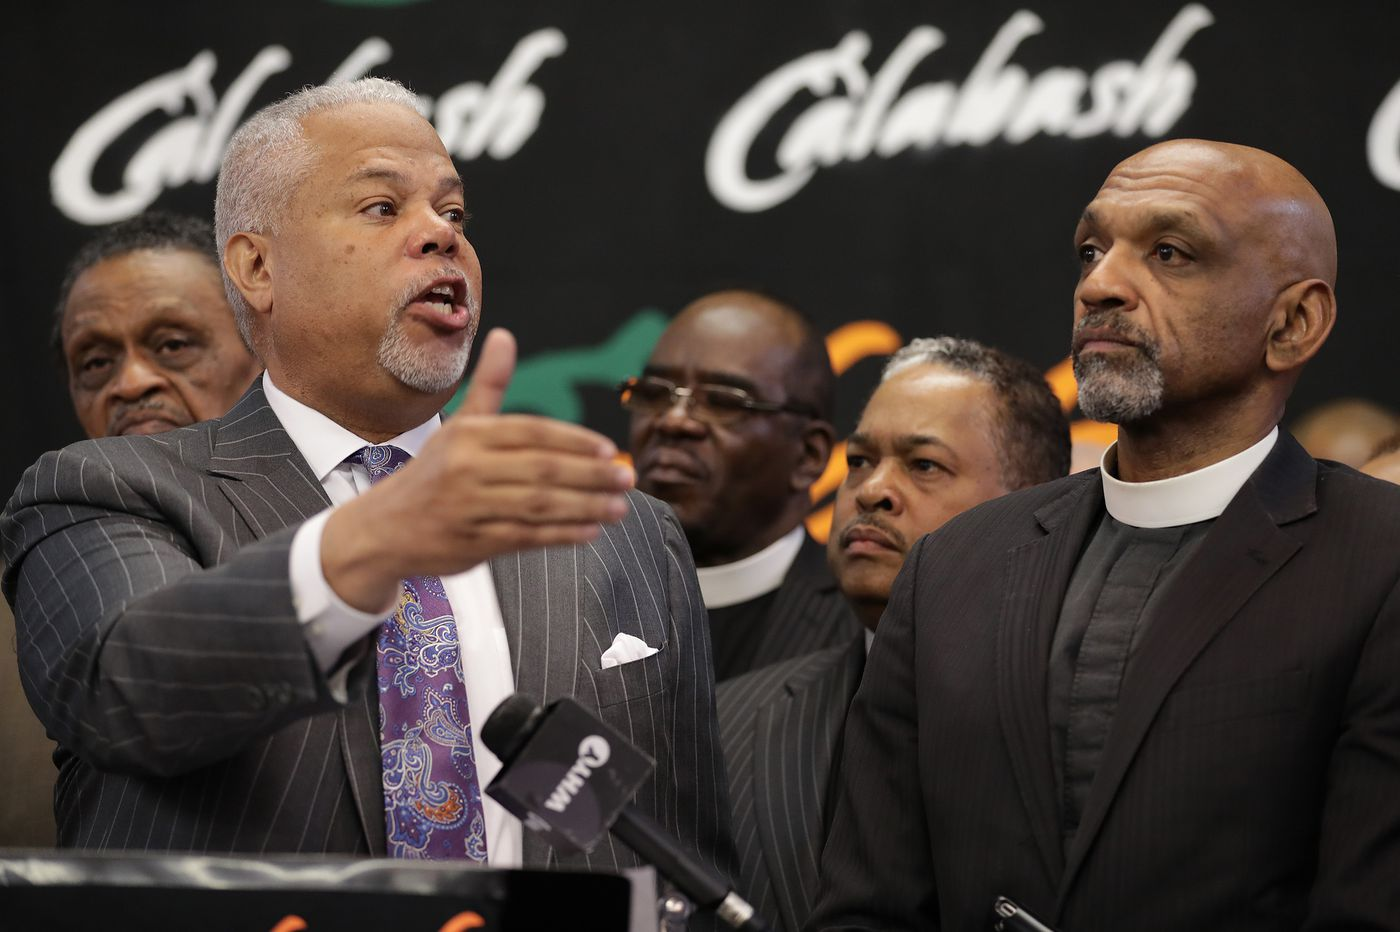 Philly's Black Clergy back State Sen. Anthony Hardy Williams, citing disappointment in Mayor Kenney